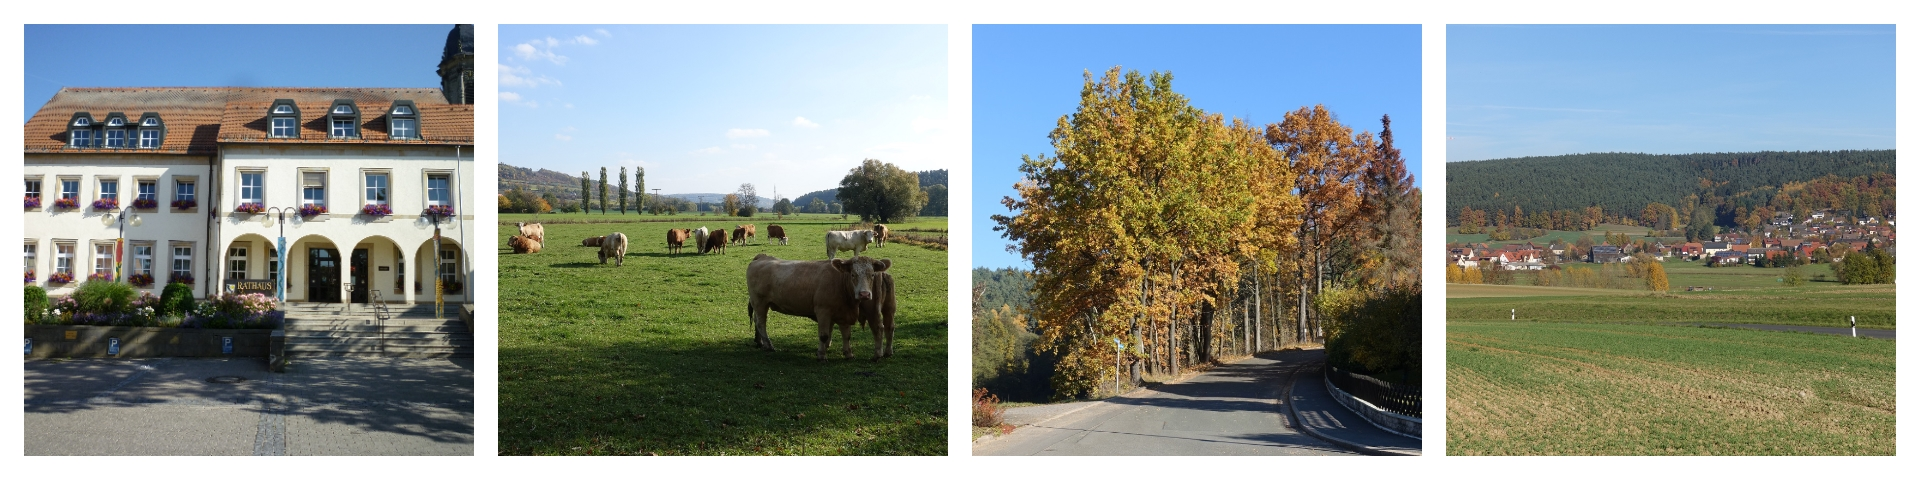 Herbst Collage 2019-3